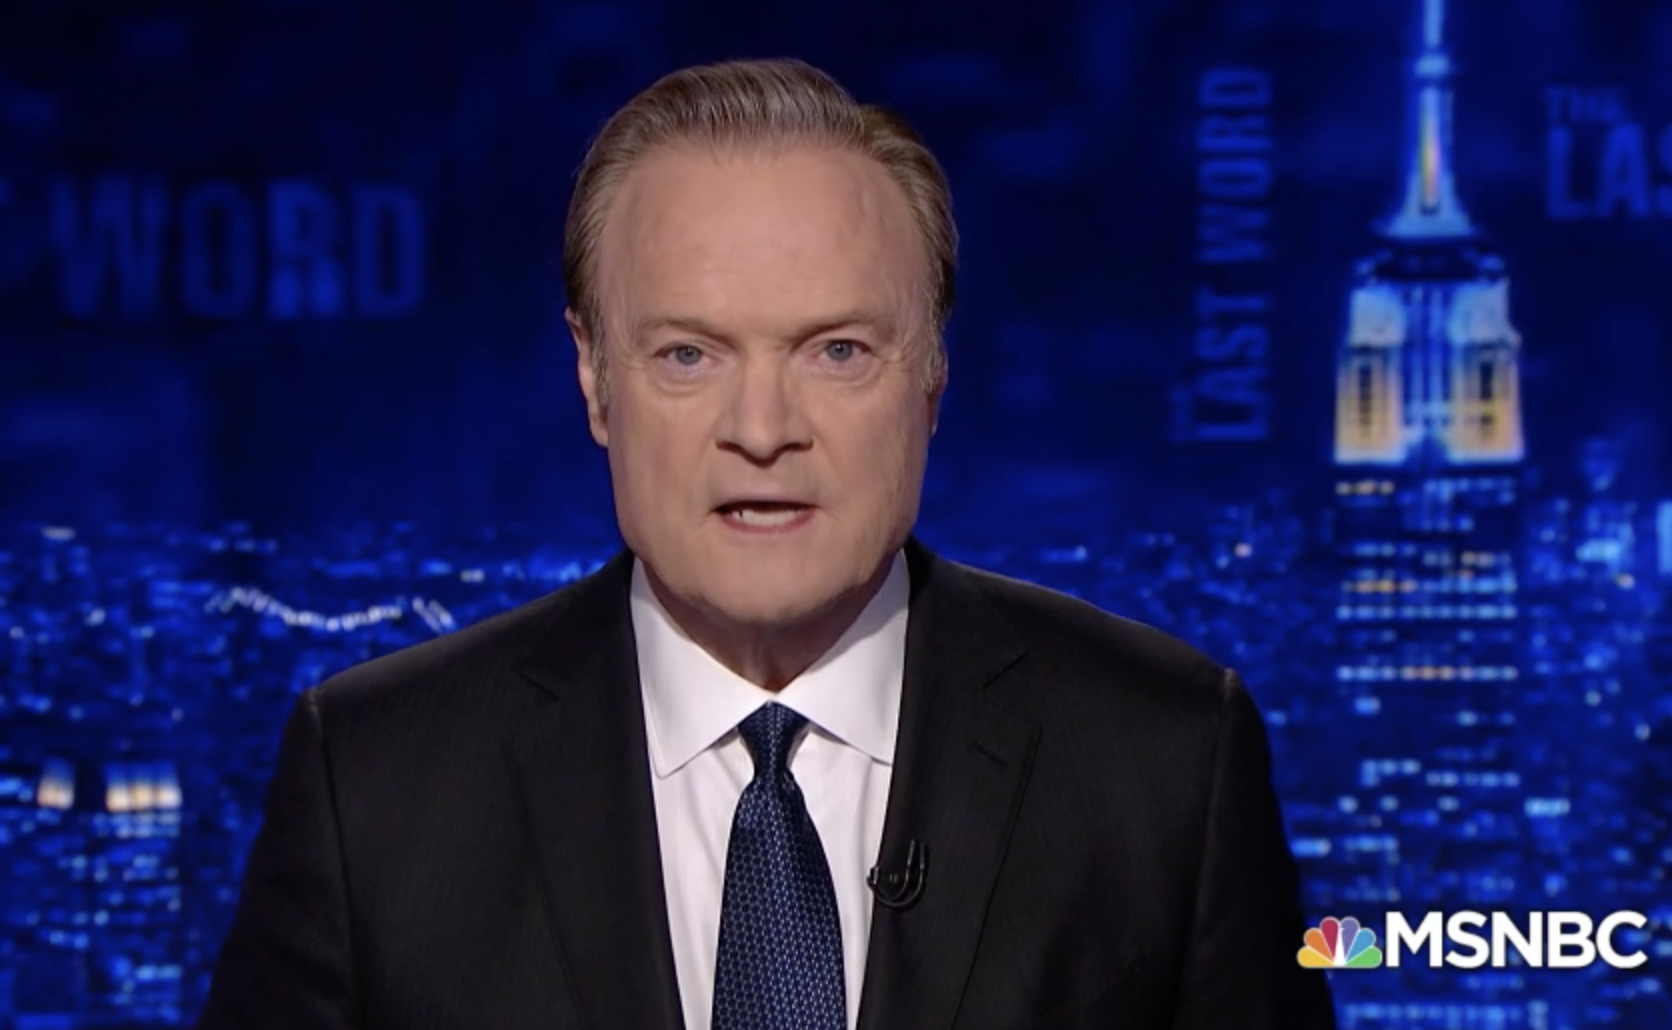 MSNBC host promotes video of Russian military attacking U.S. forces